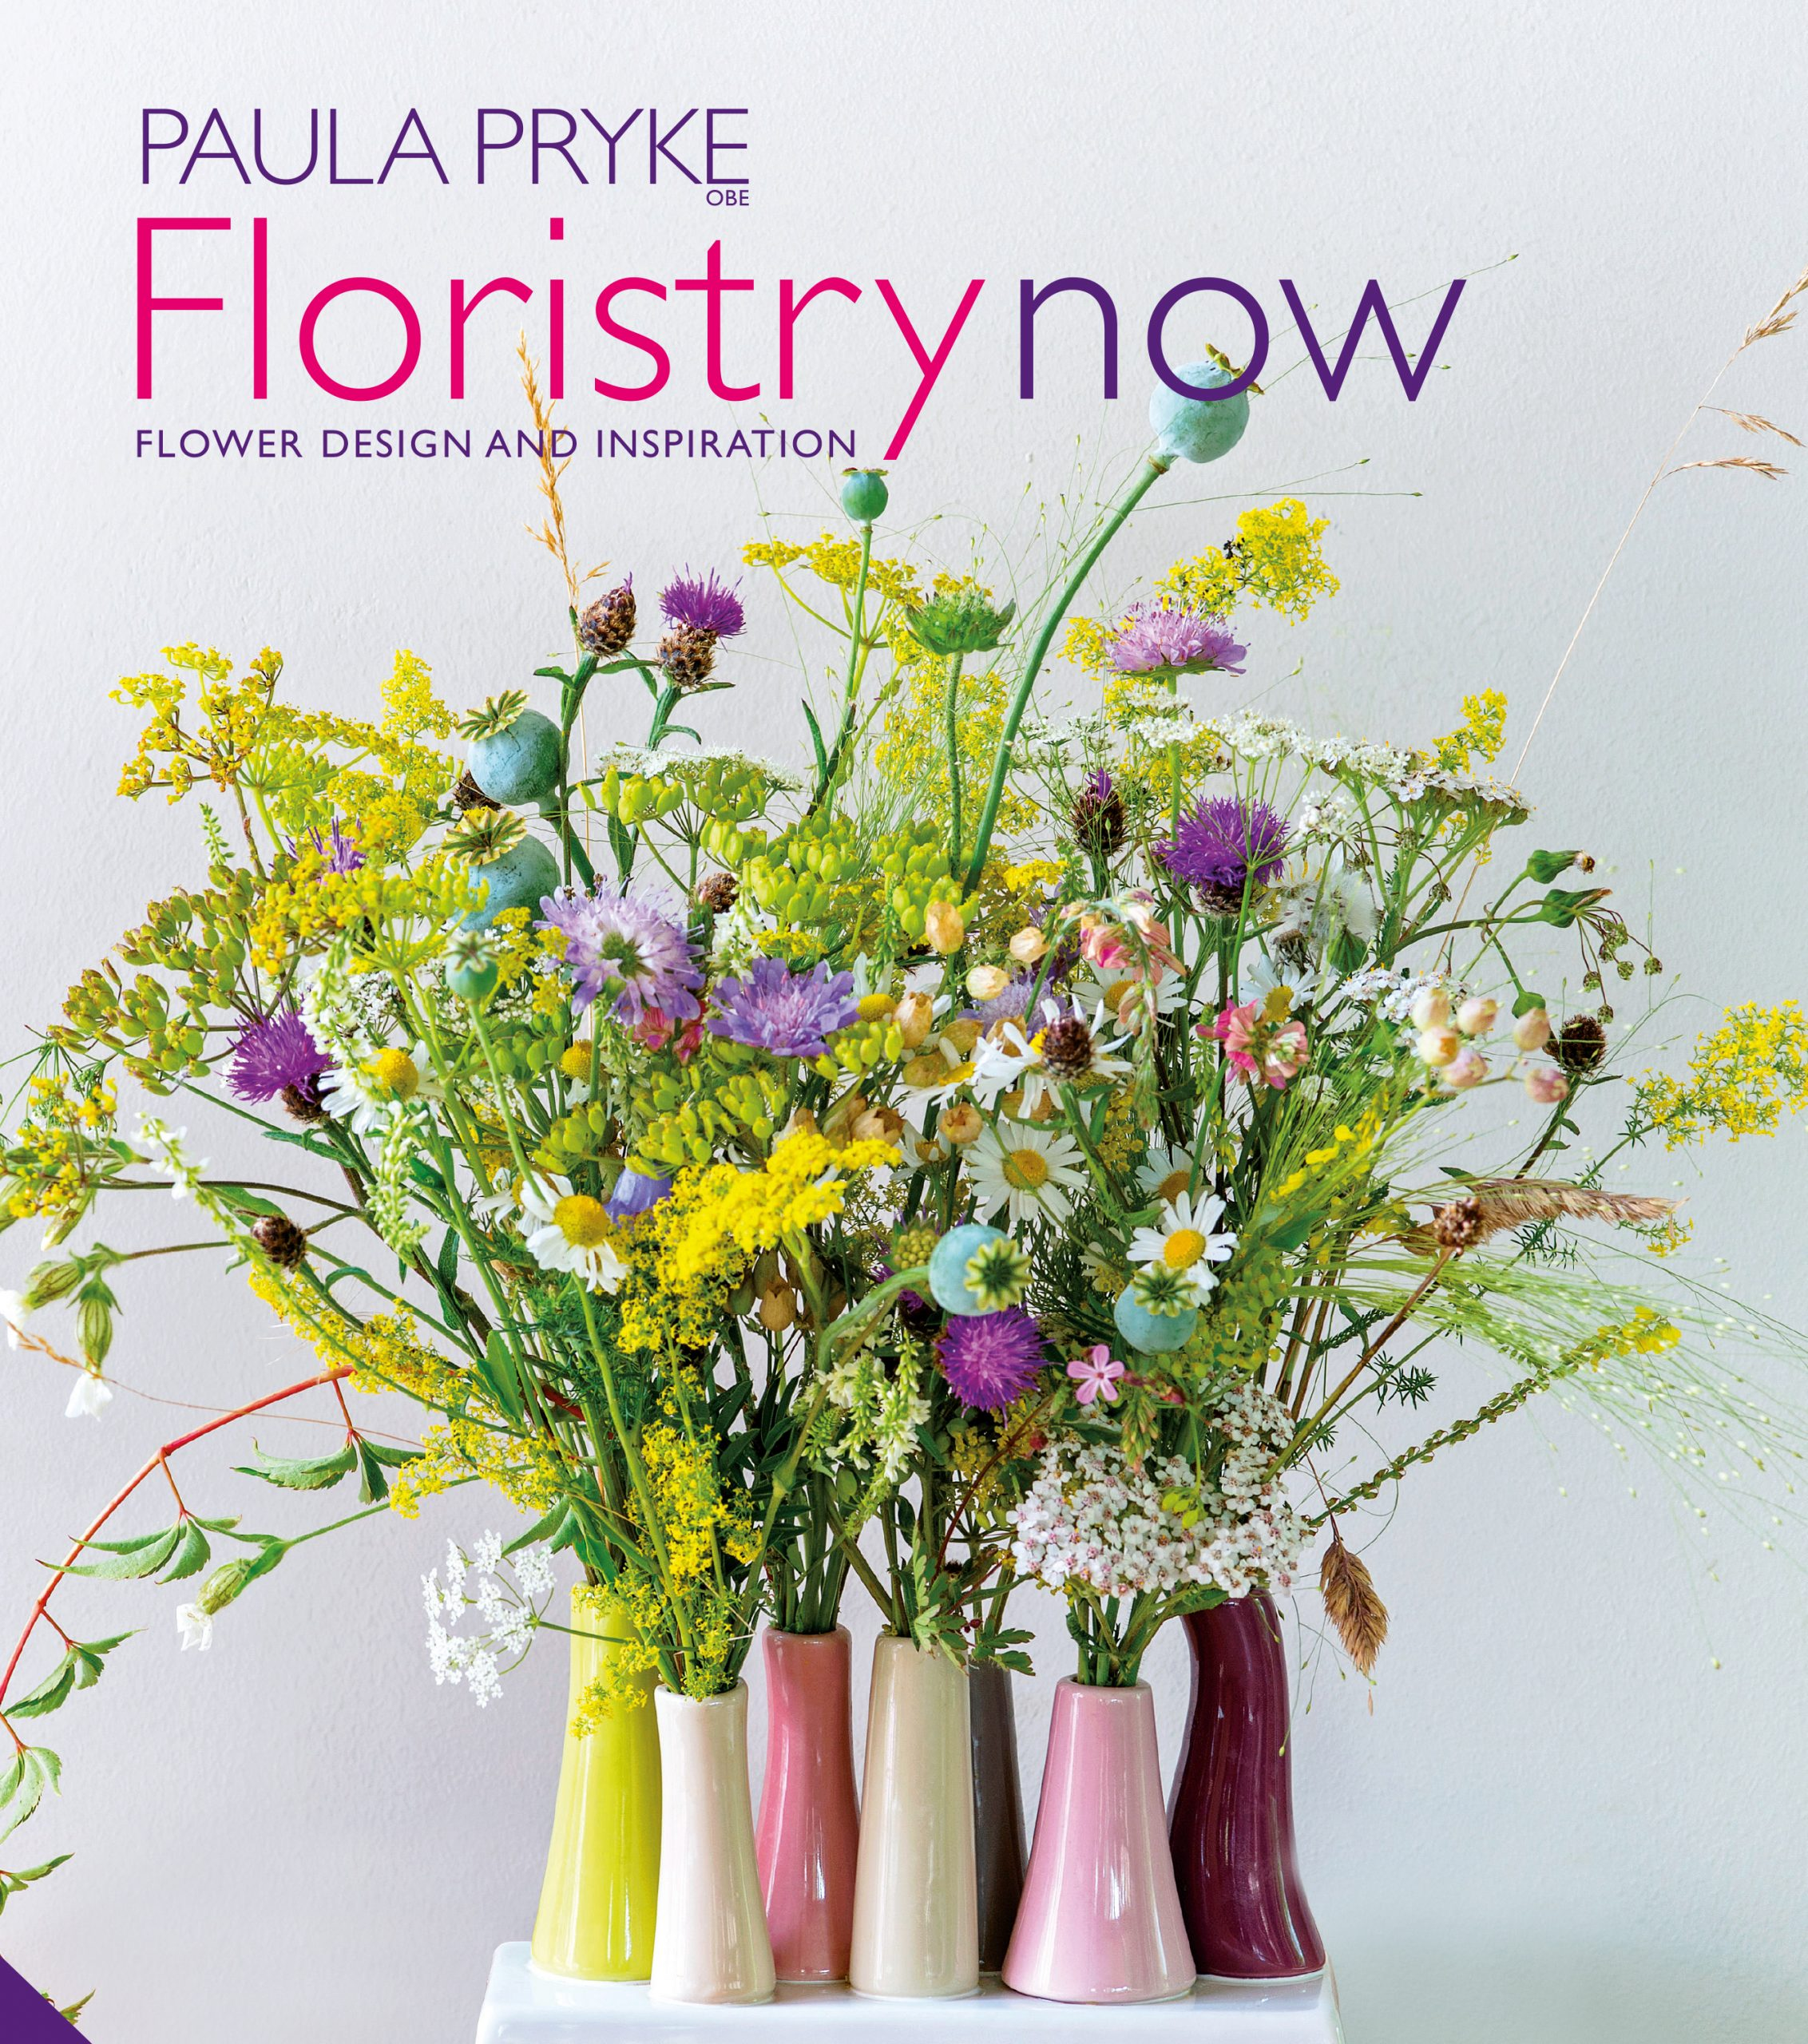 Review: Floristry Now by Paula Pryke